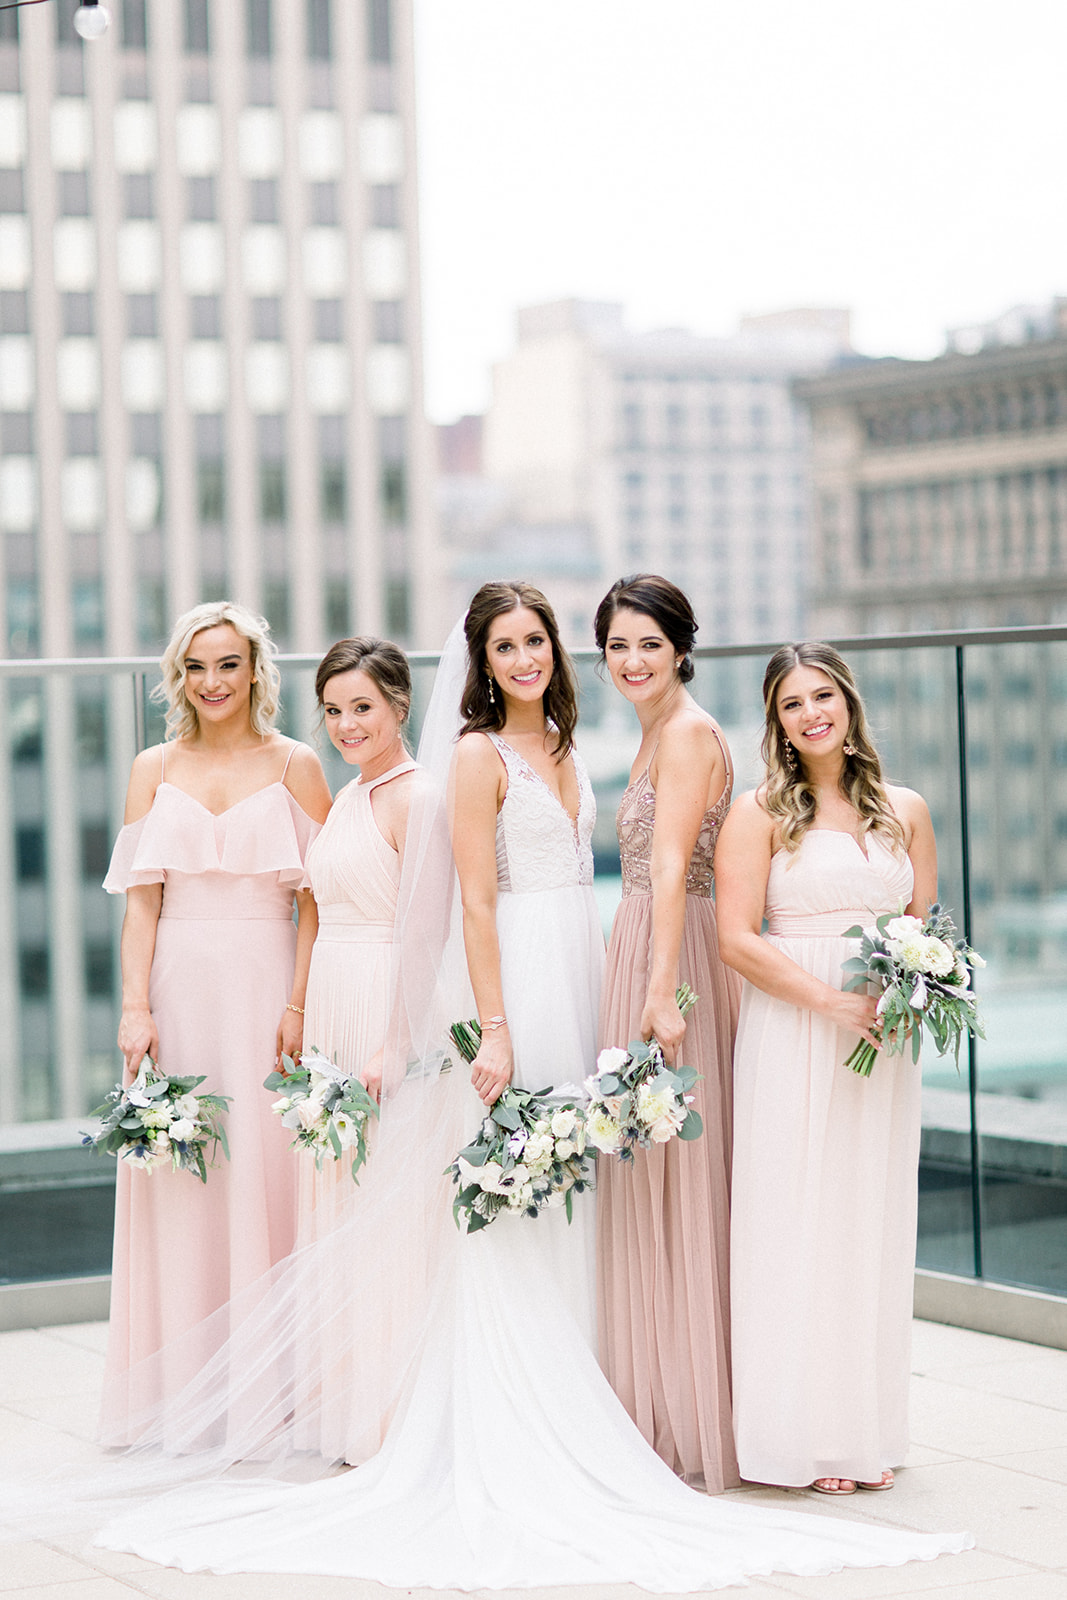 Mismatched soft pink bridesmaids dresses for Pittsburgh wedding held at Hotel Monaco. See more beautiful details of this simple, yet stunning wedding at exhale-events.com!